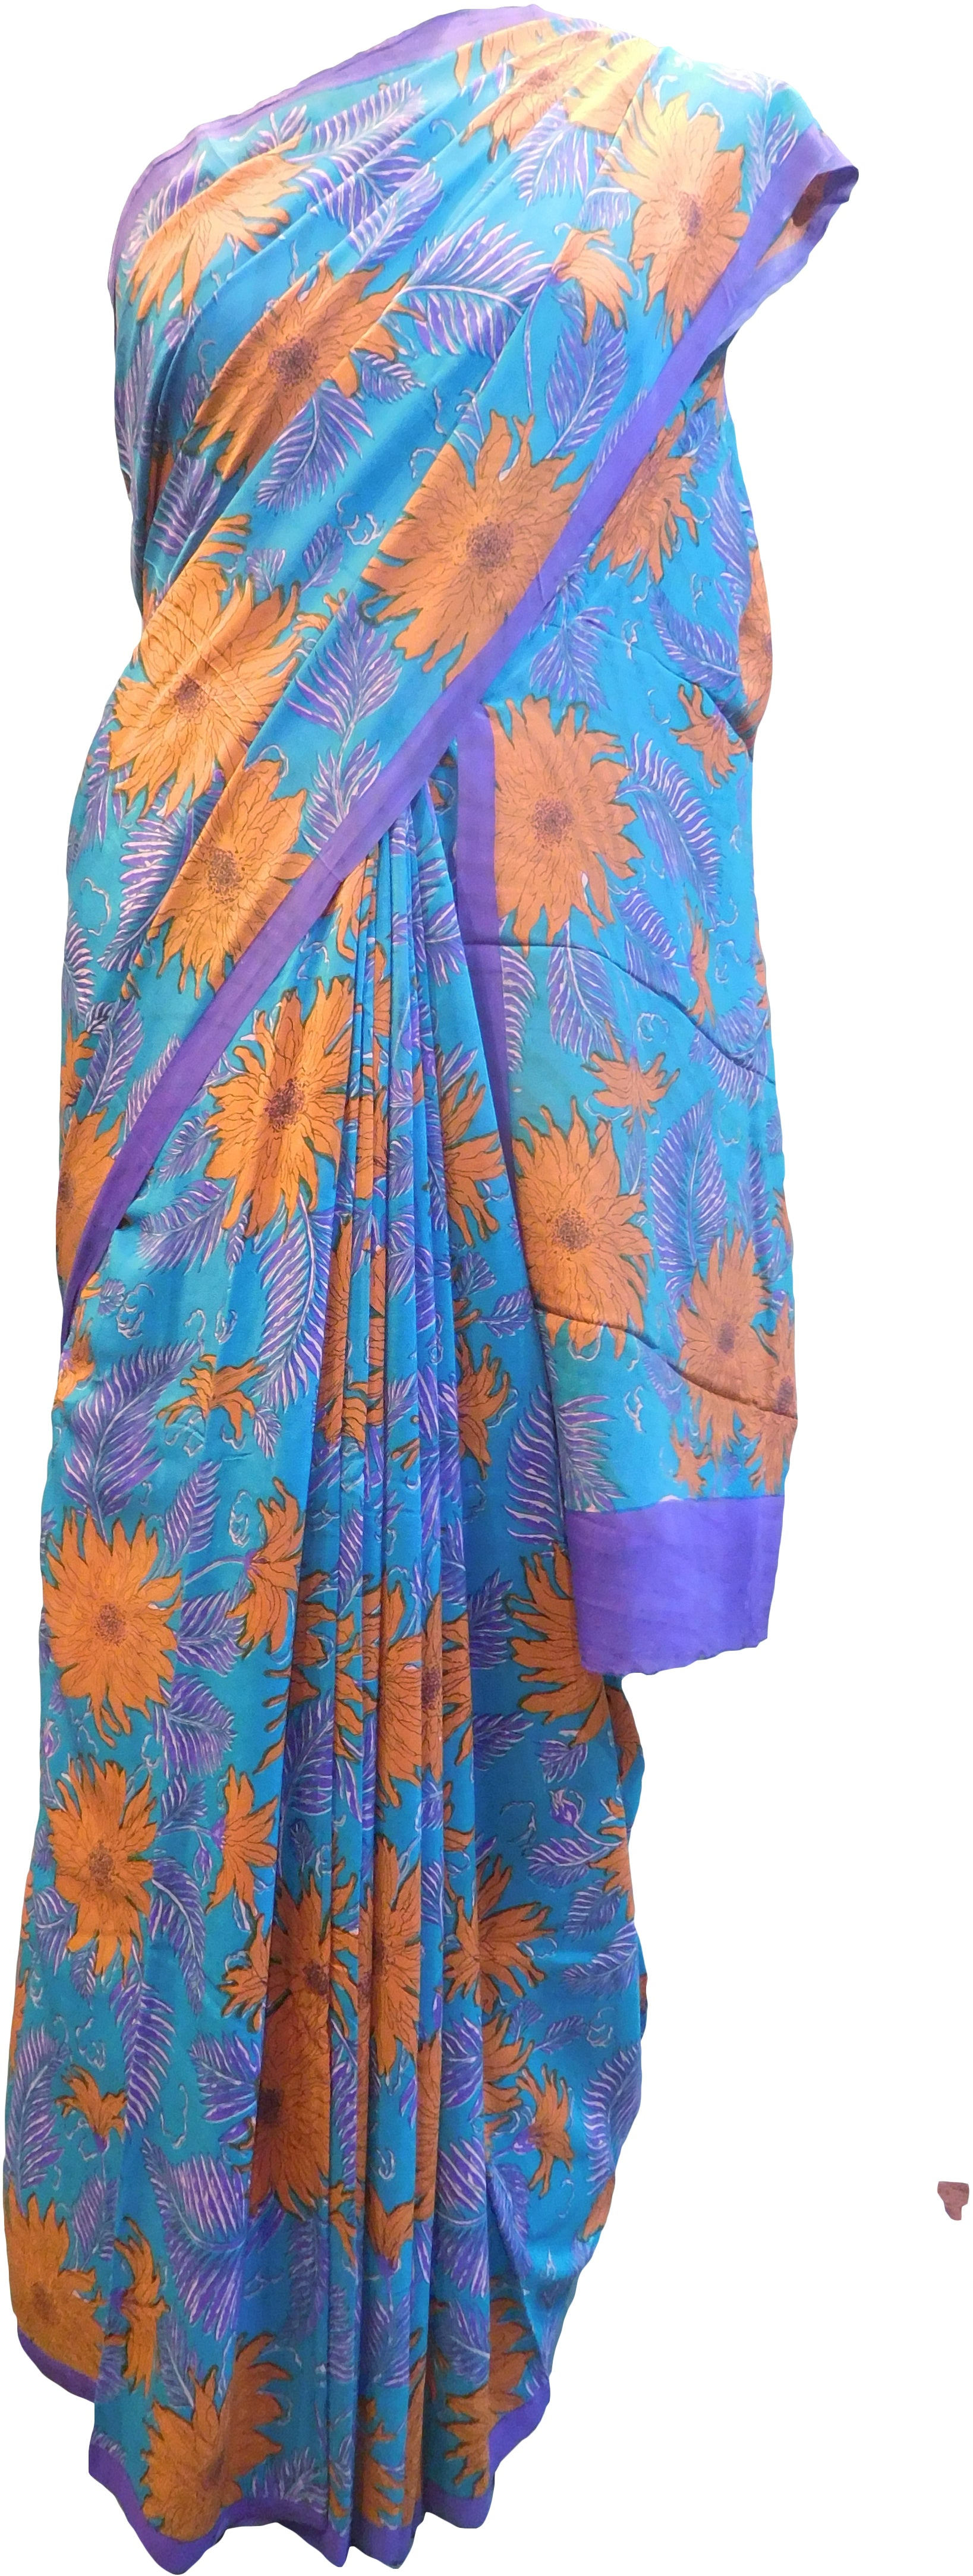 Multicolor Designer Wedding Partywear Pure Crepe Hand Brush Reprinted Kolkata Saree Sari With Blouse Piece RP293